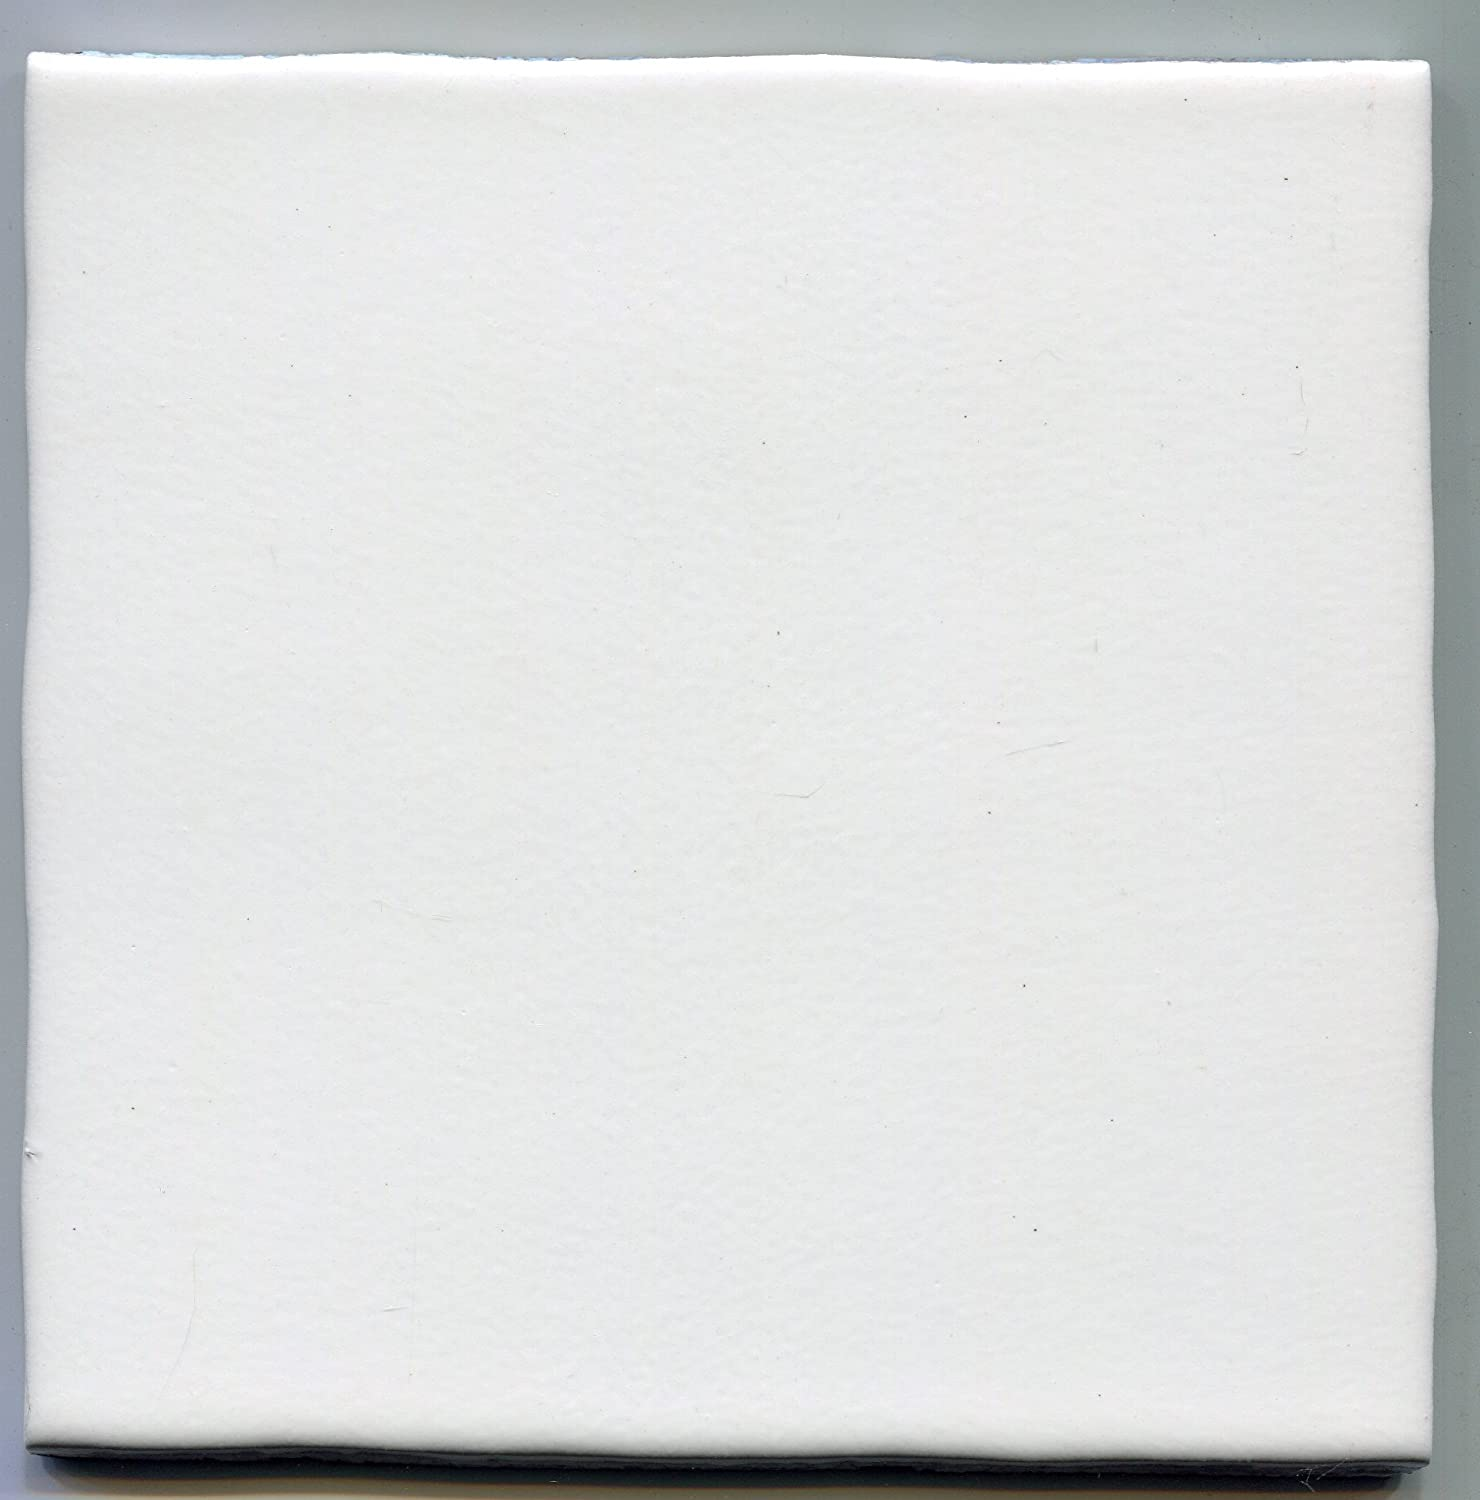 United states ceramic tile company 6x6 ceramic wall tile square about 6x6 ceramic tile arctic white 311 matte summitville bath vintage sample l dailygadgetfo Images